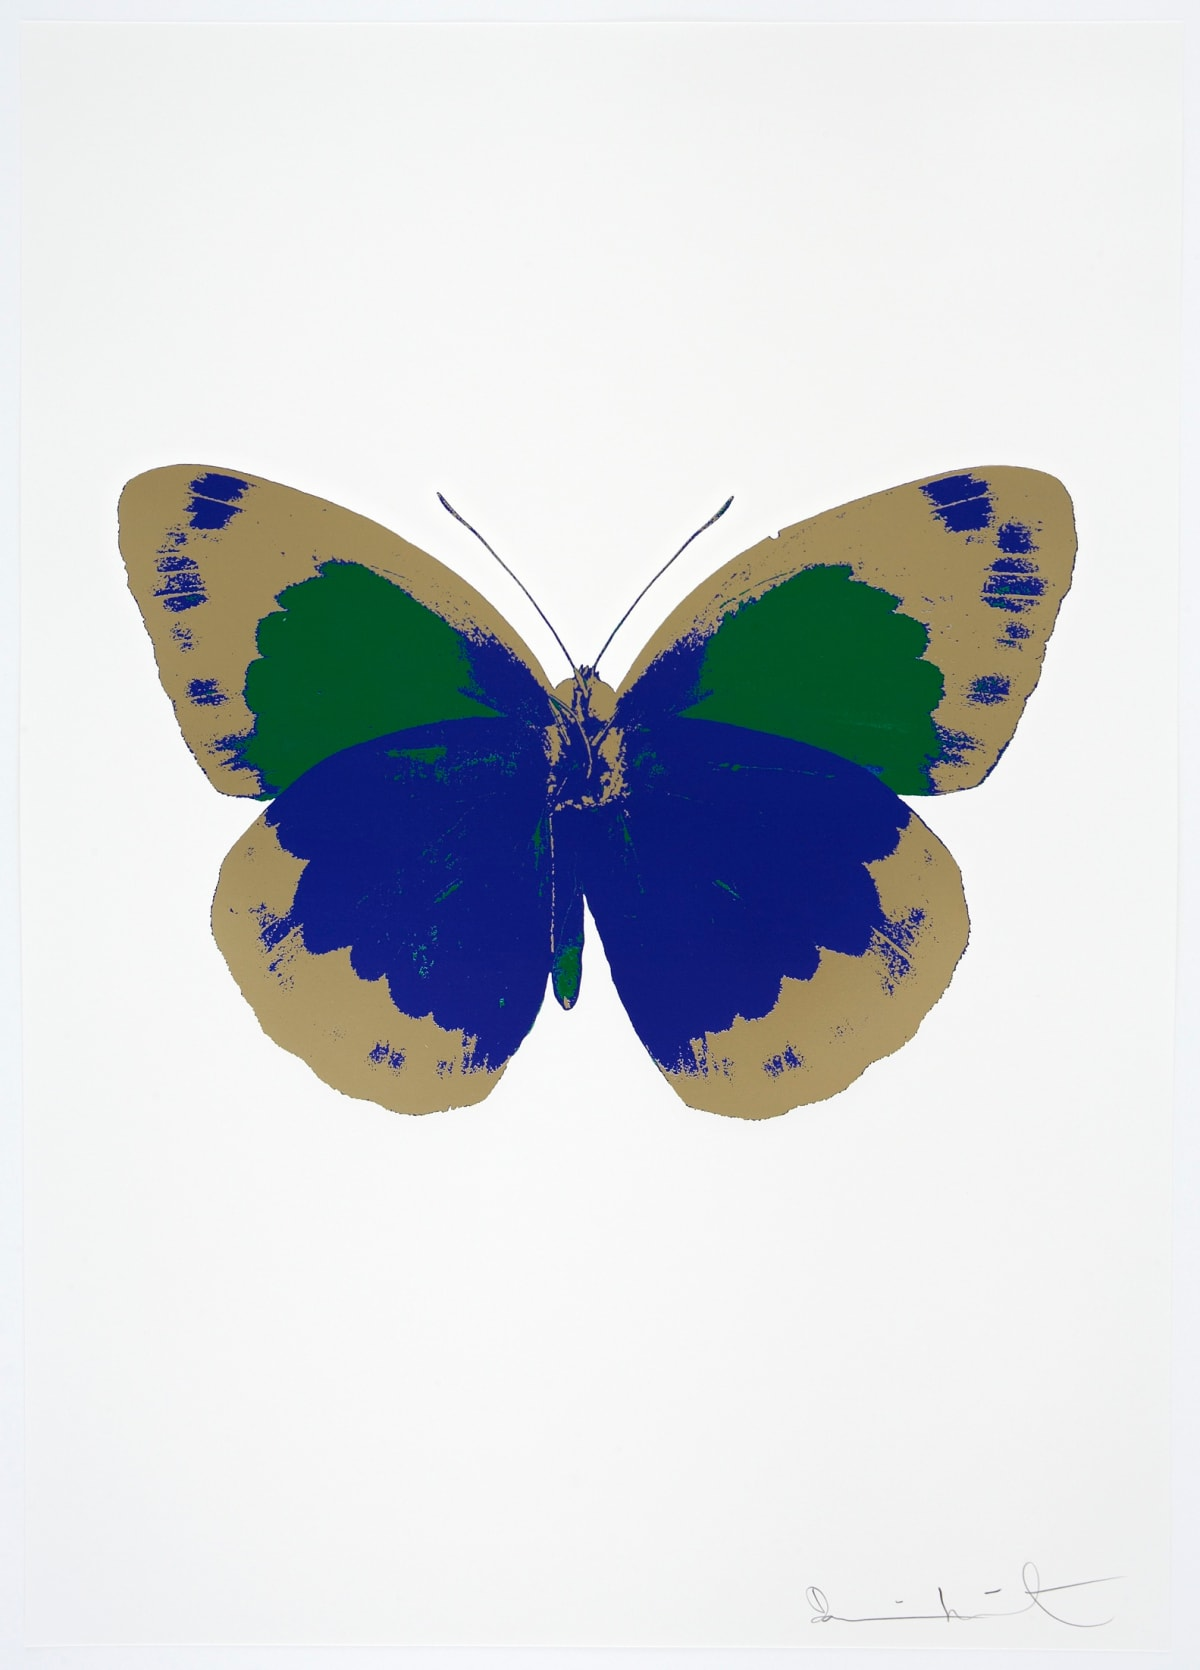 Damien Hirst The Souls II - Westminster Blue/Cool Gold/Emerald Green, 2010 3 colour foil block on 300gsm Arches 88 archival paper. Signed and numbered. Published by Paul Stolper and Other Criteria 72 x 51cm OC7884 658-67 Edition of 15